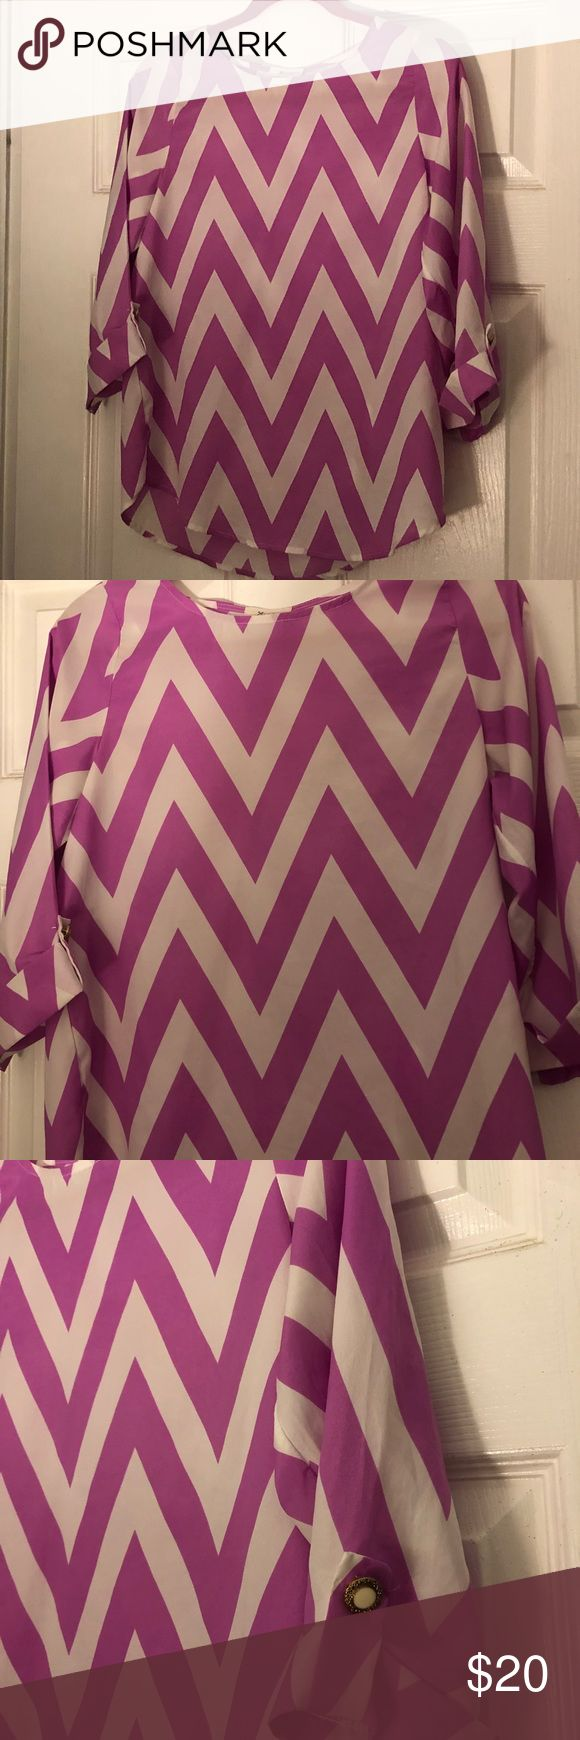 Everly chevron blouse Everly pink and white chevron blouse. Size S. Everly Tops Blouses